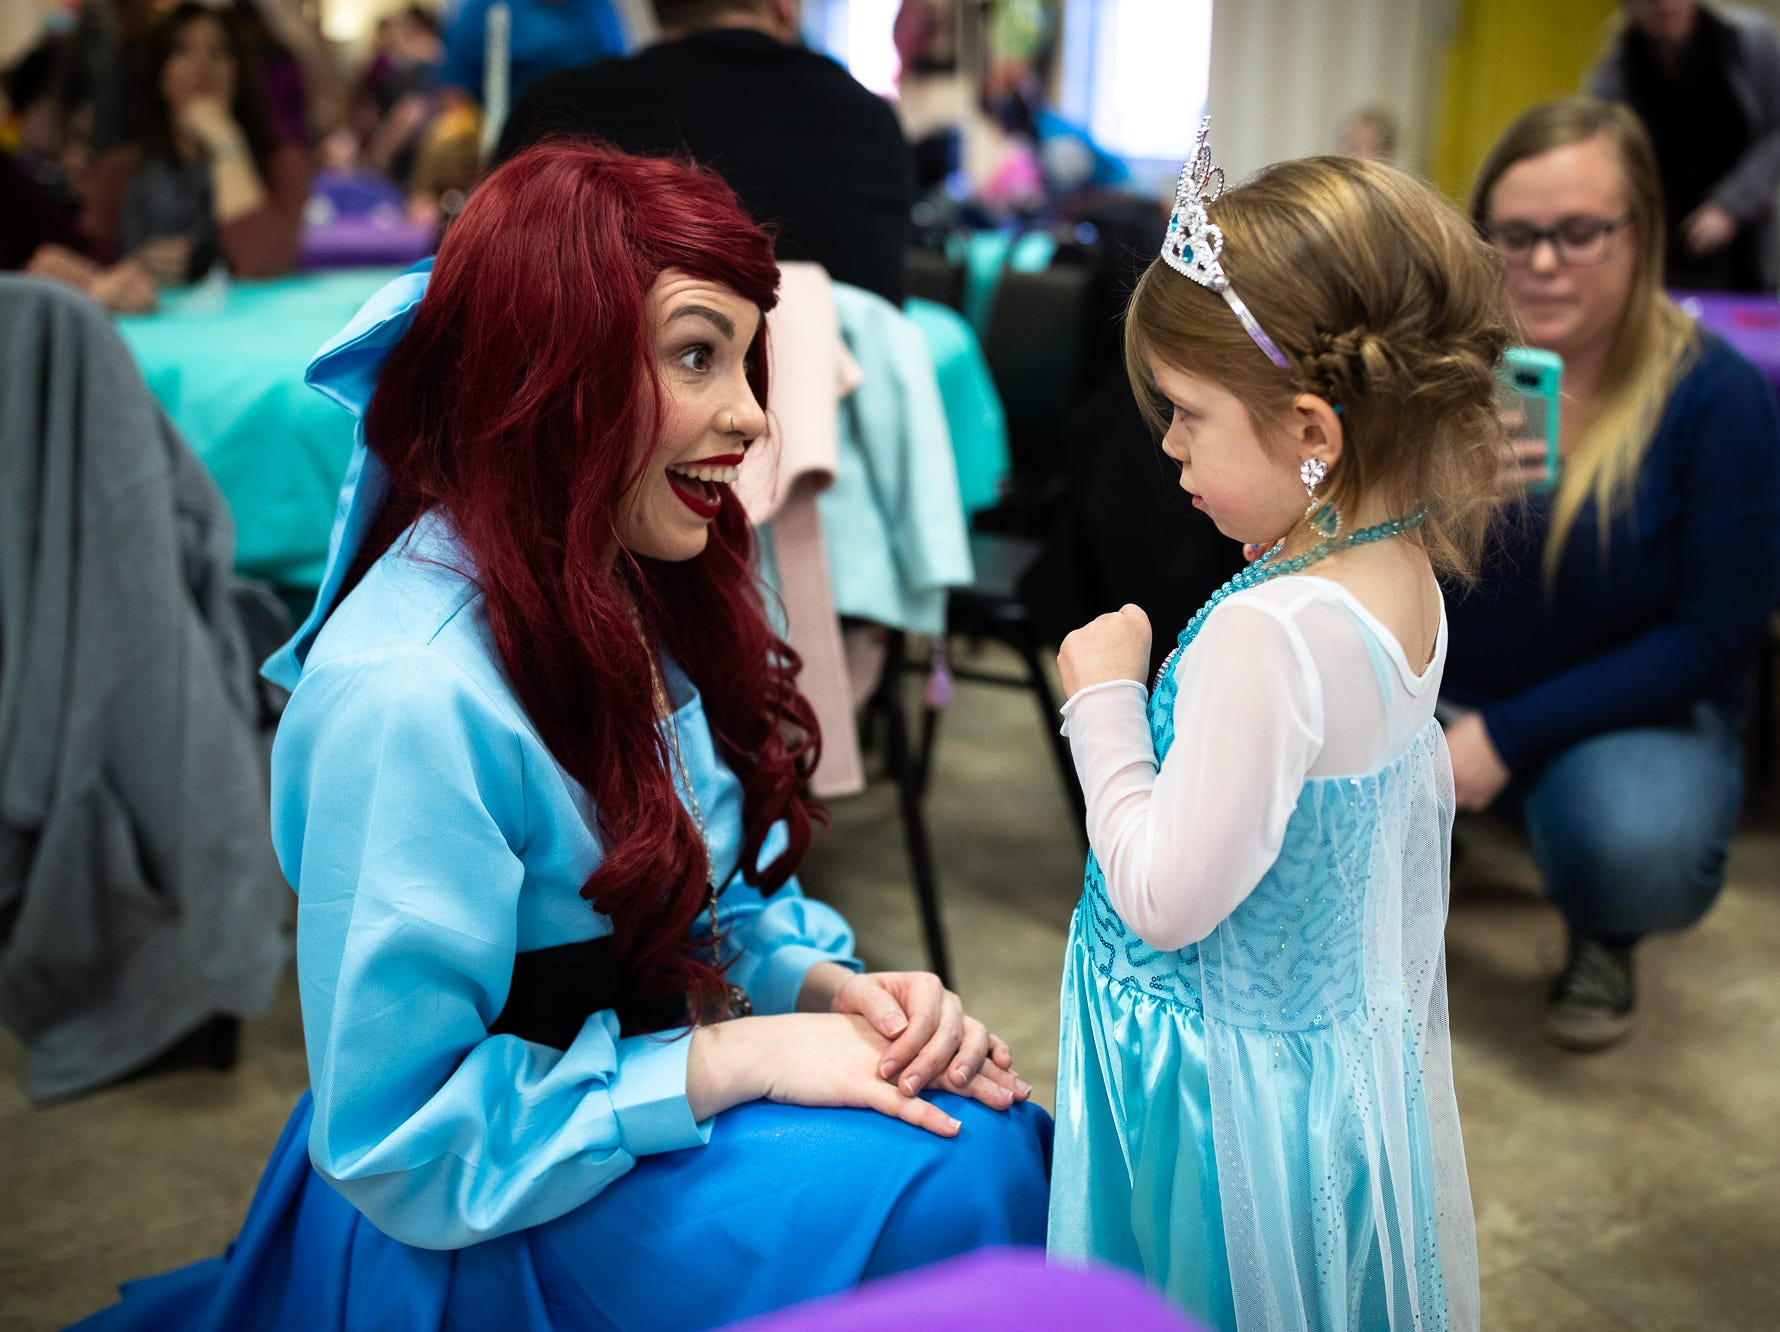 Princess Ariel greets kids in attendance at a princess teatime hosted by the Black Rose Rollers, Saturday, Feb. 9, 2019, at the Hanover YWCA.